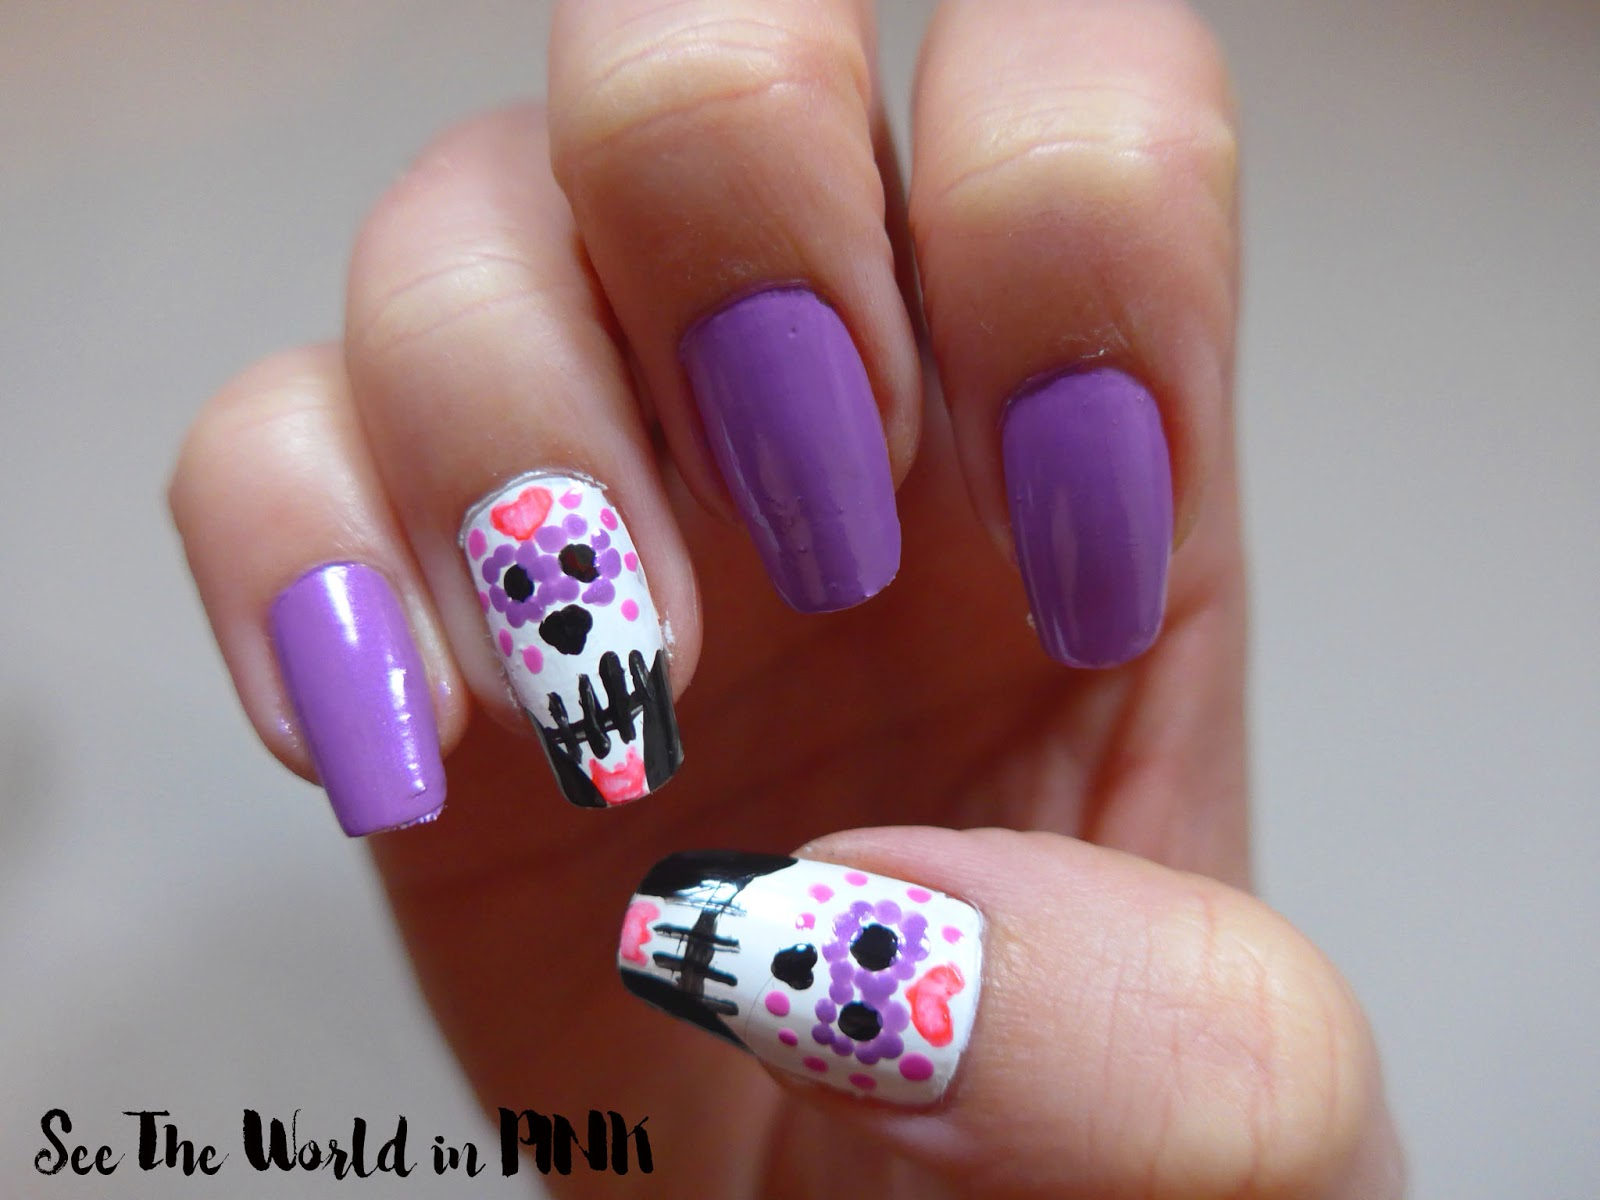 Manicure Tuesday - Dia de Muertos Sugar Skull Nails (Day of the Dead)